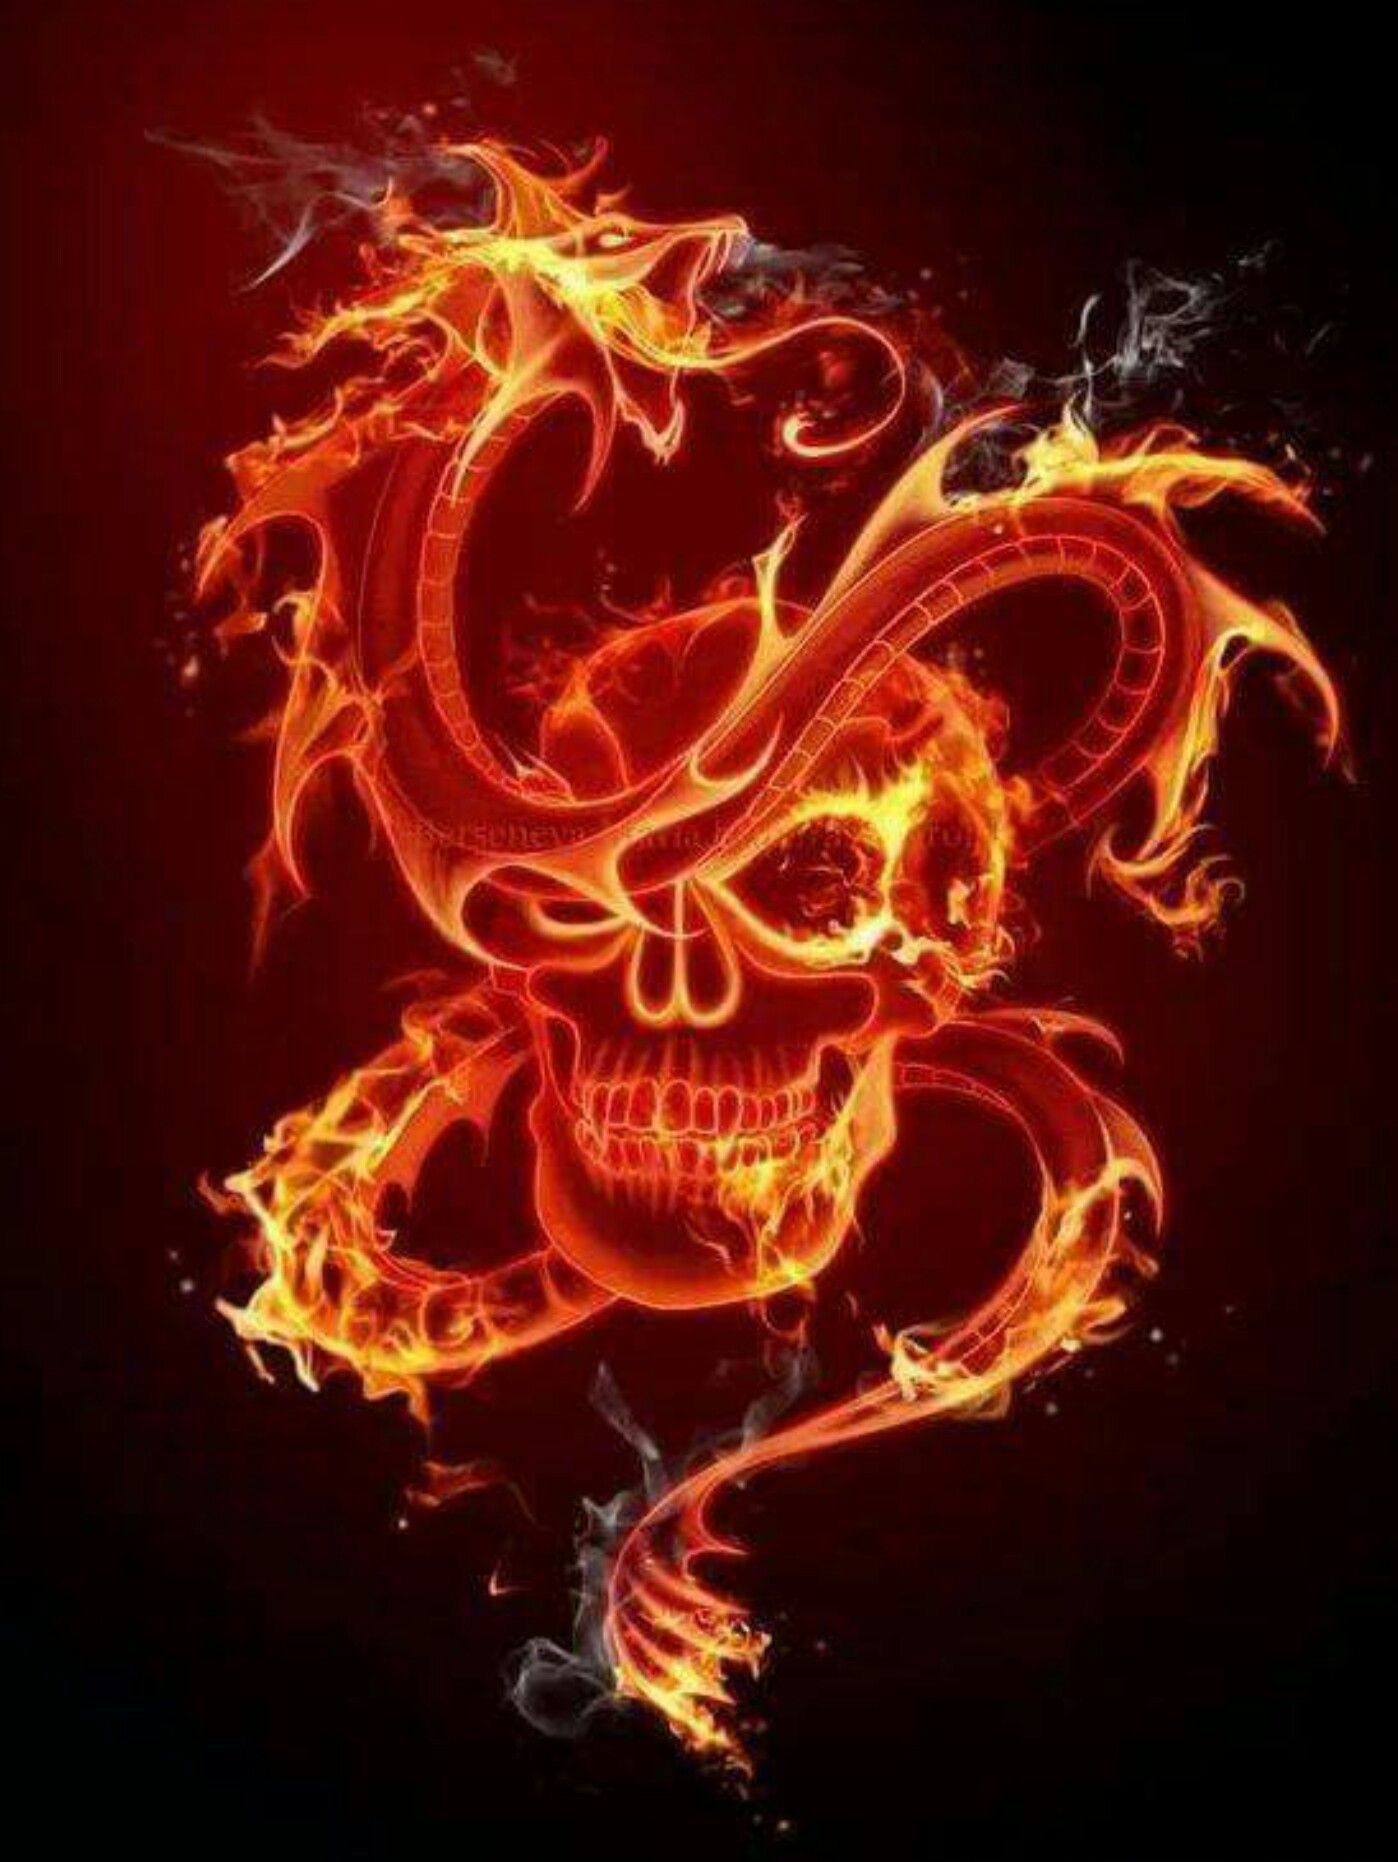 Flaming Skull & Dragon | Skull artwork, Skull wallpaper, Skull pictures